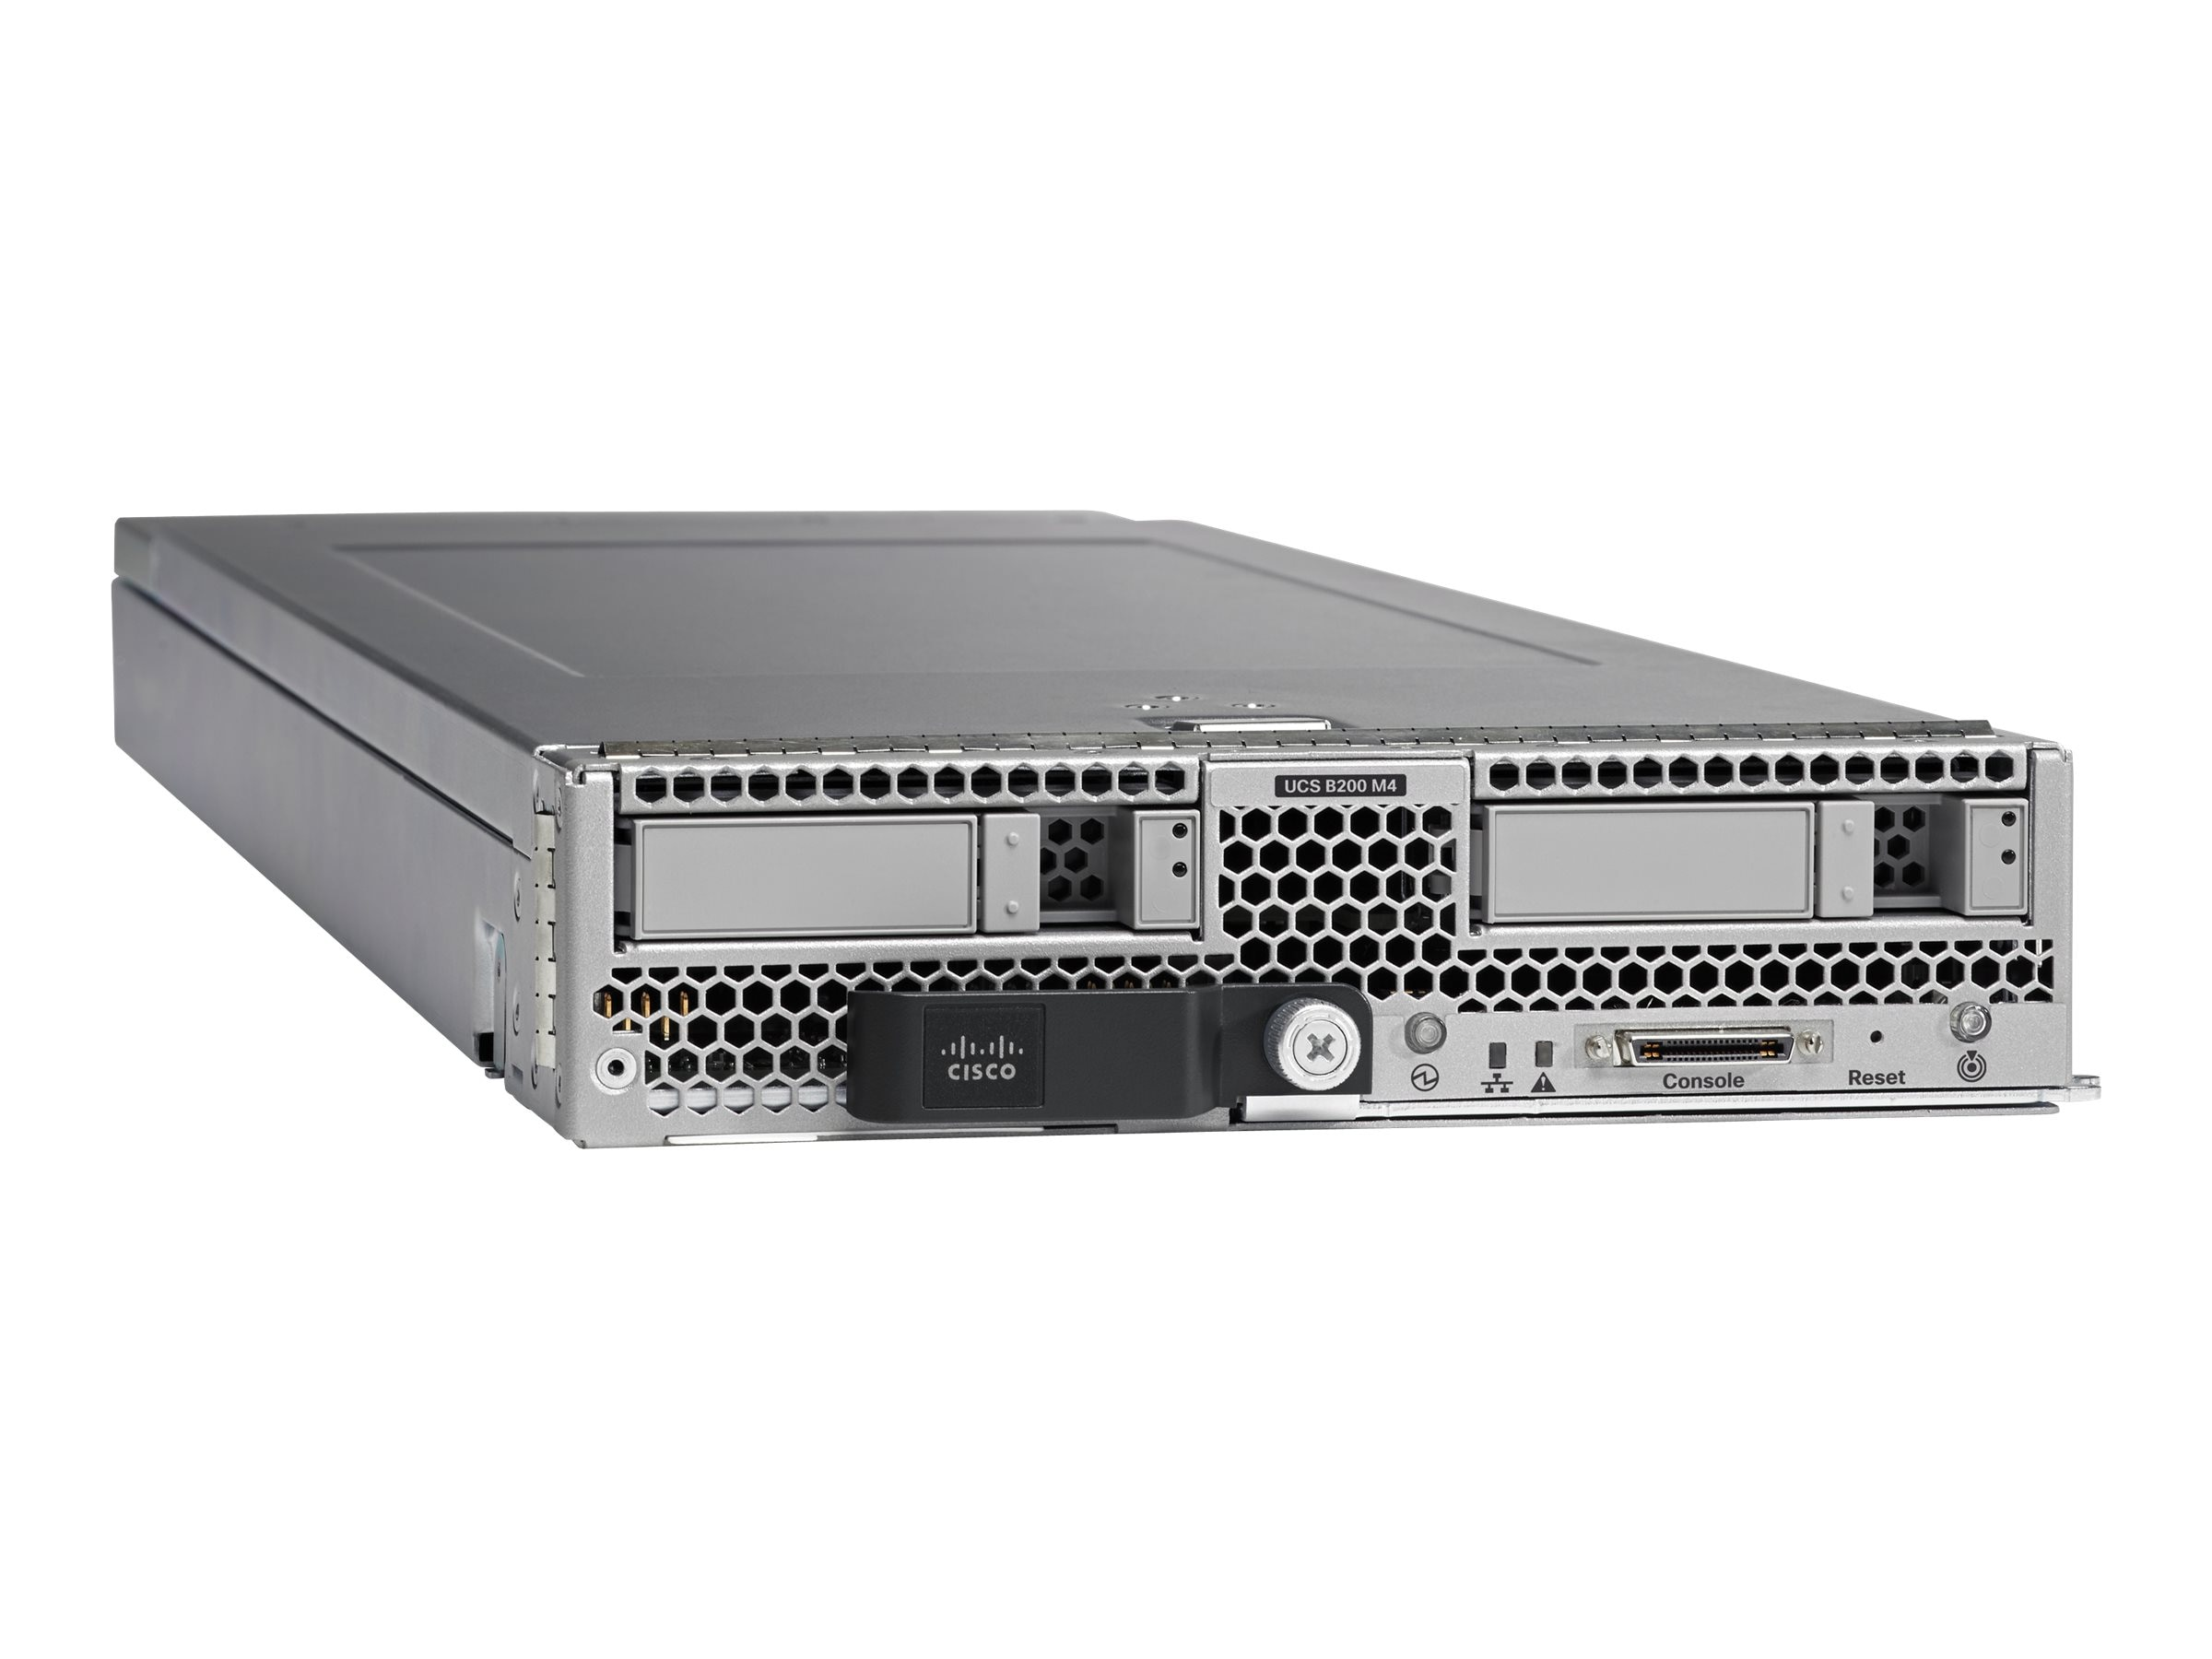 Cisco UCS-SP-B200M4-S2 Image 3